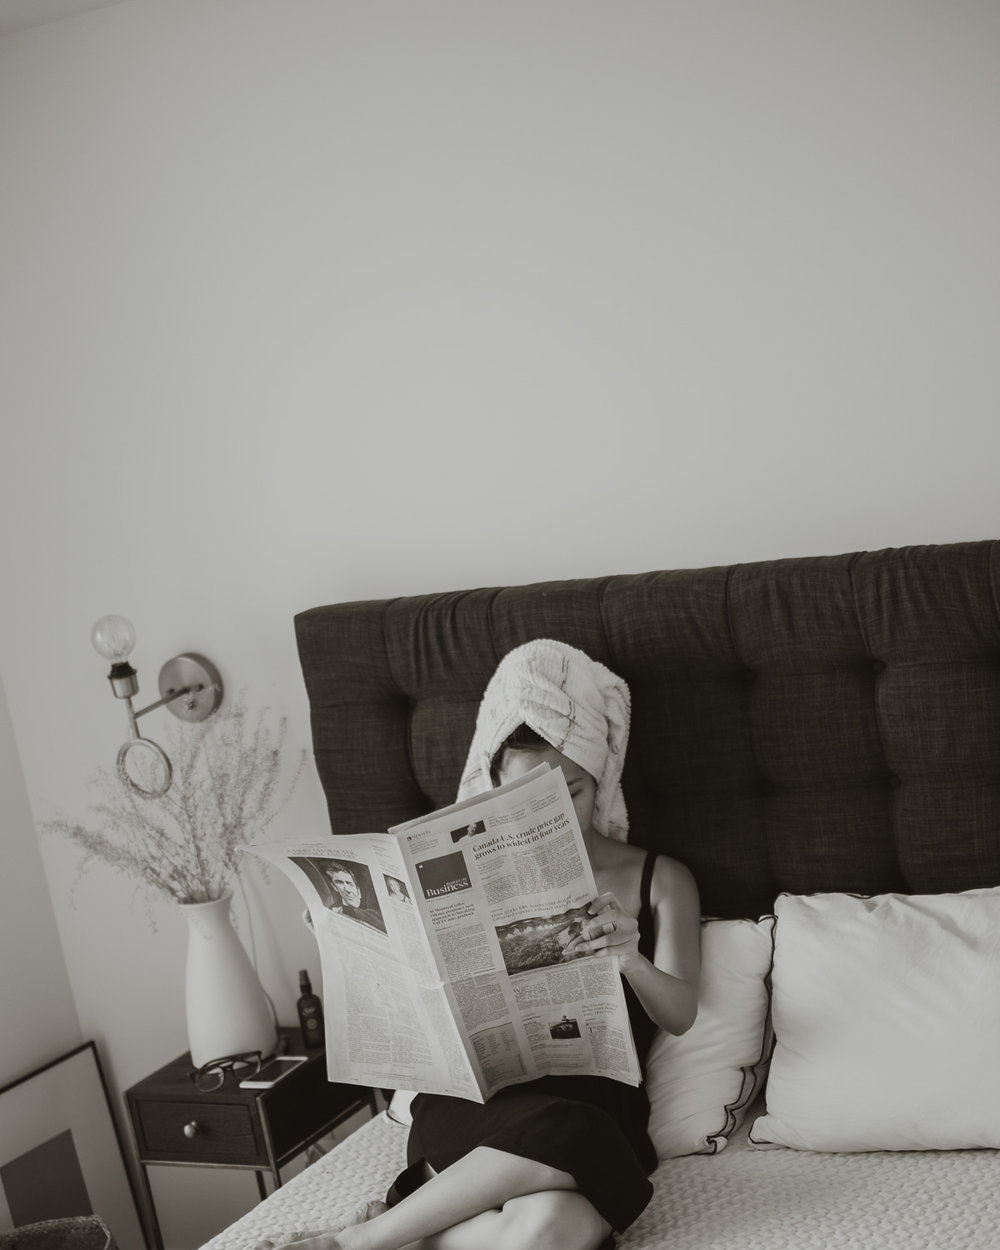 newspaper-in-bed